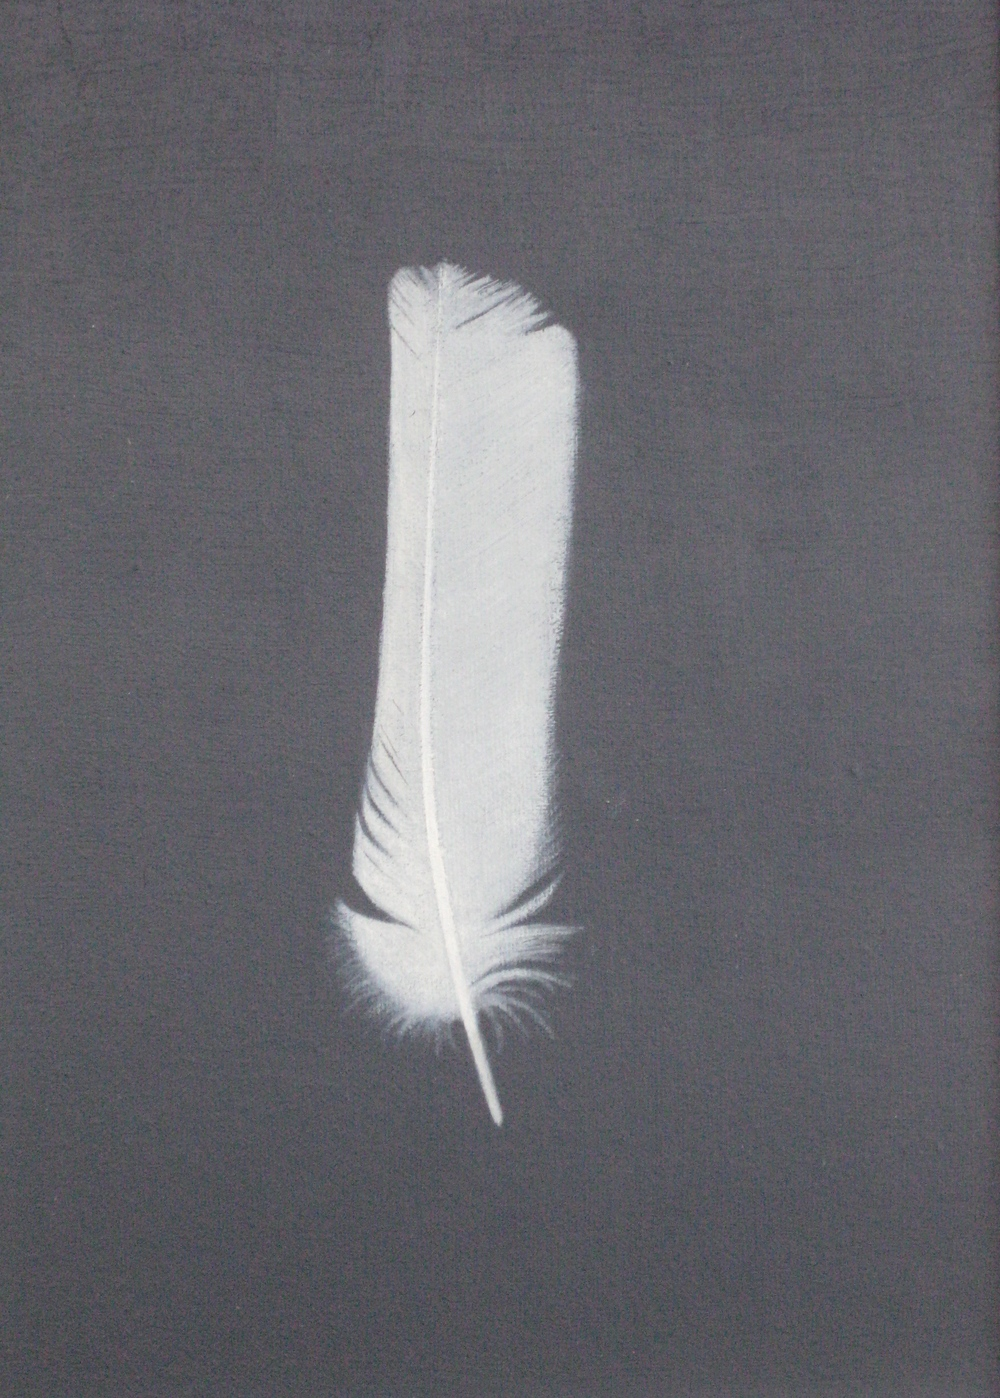 "WHITE FEATHER  10X12"" (25X30cm)   Oil on canvas    Sold  Shortlisted for 2016 Royal Academy Summer Exhibition"